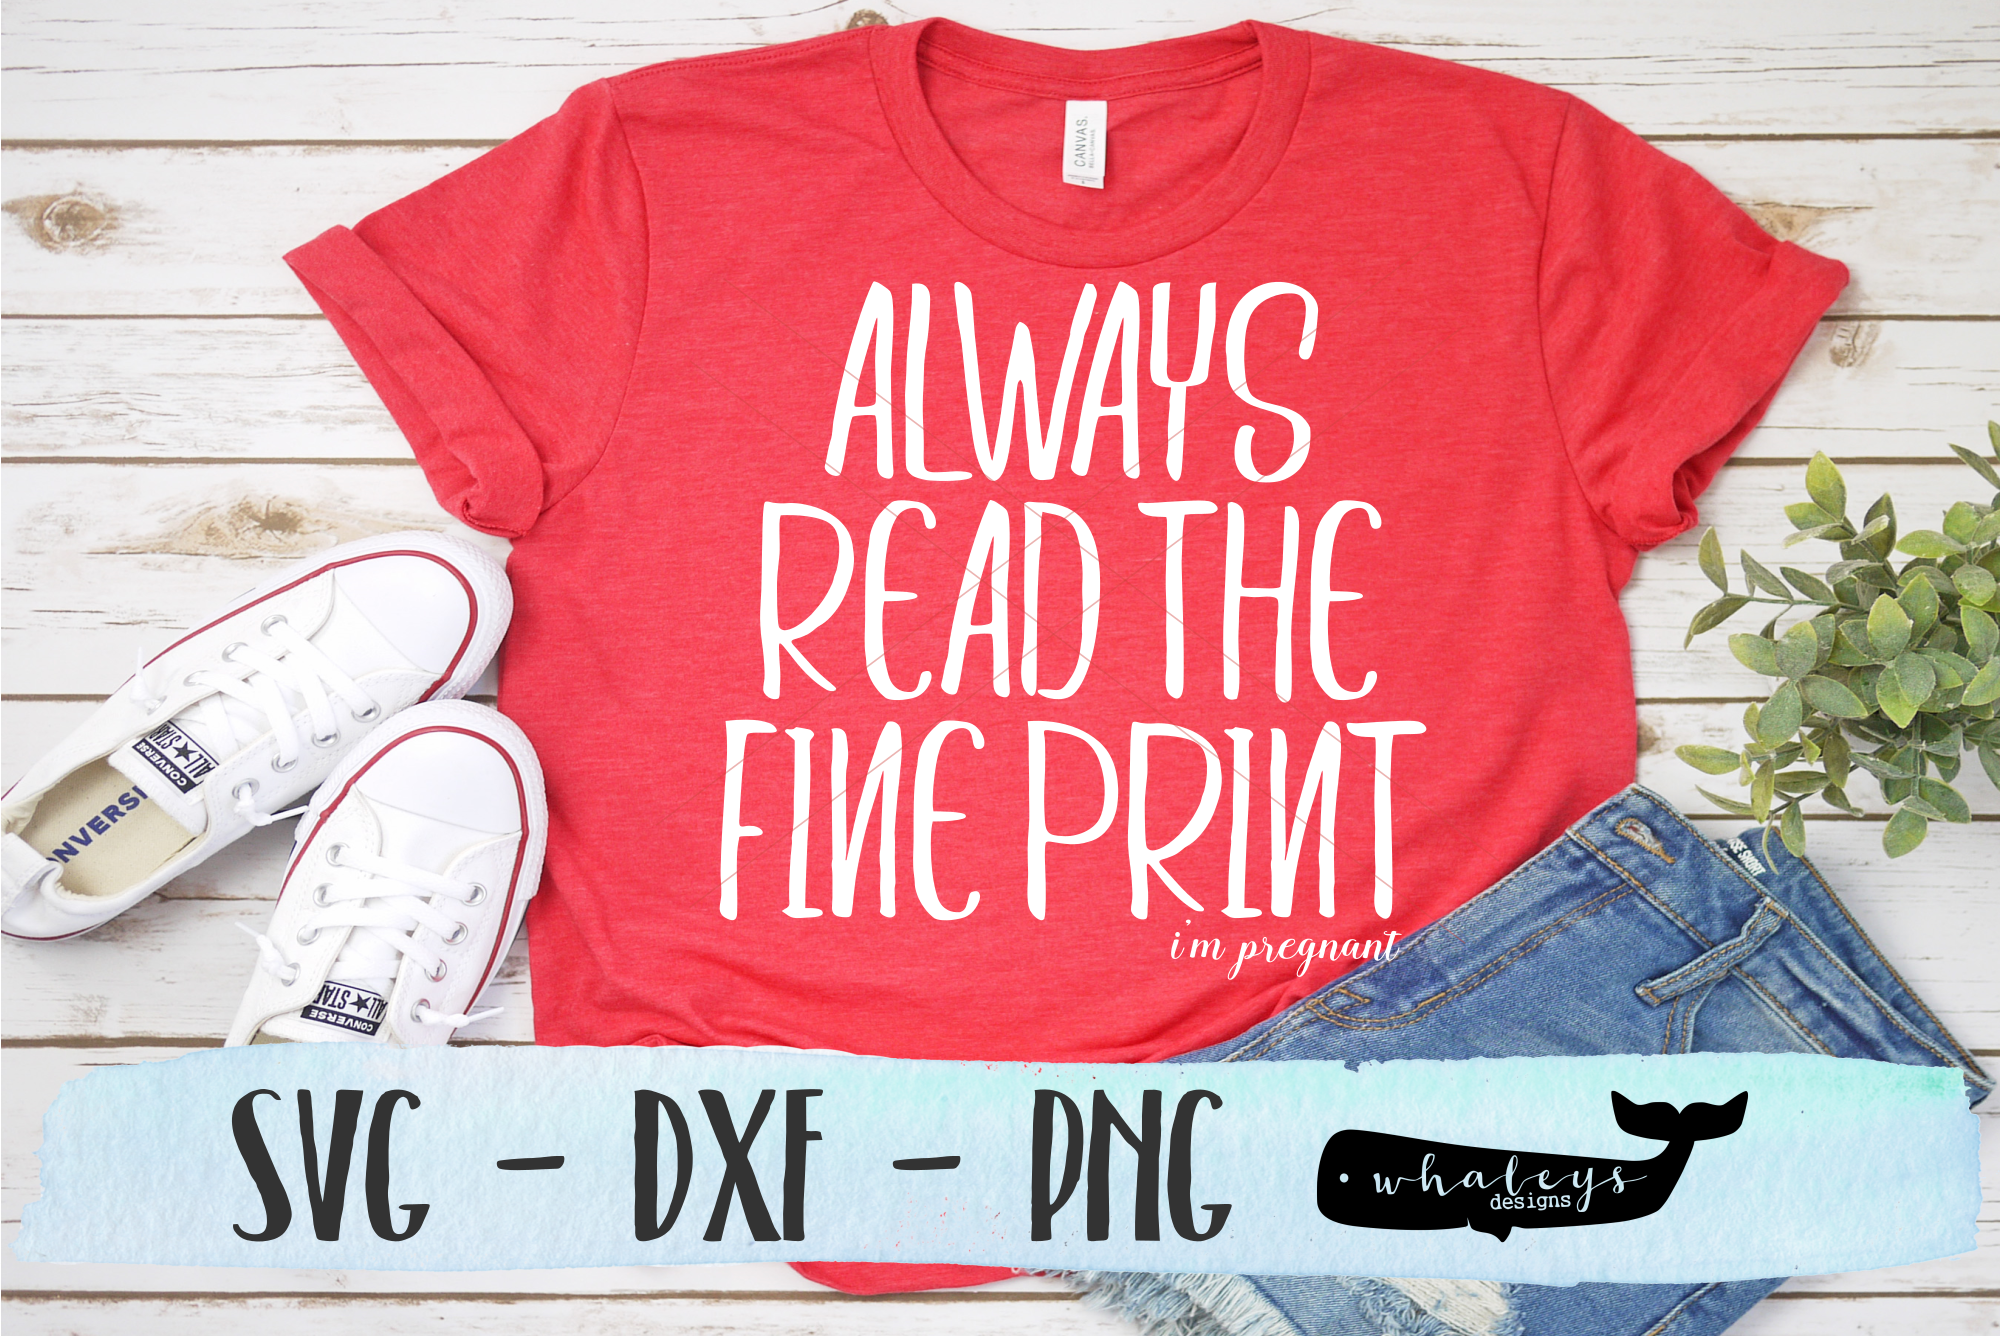 Download Free Pregnant Announcement Shirt Graphic By Whaleysdesigns for Cricut Explore, Silhouette and other cutting machines.